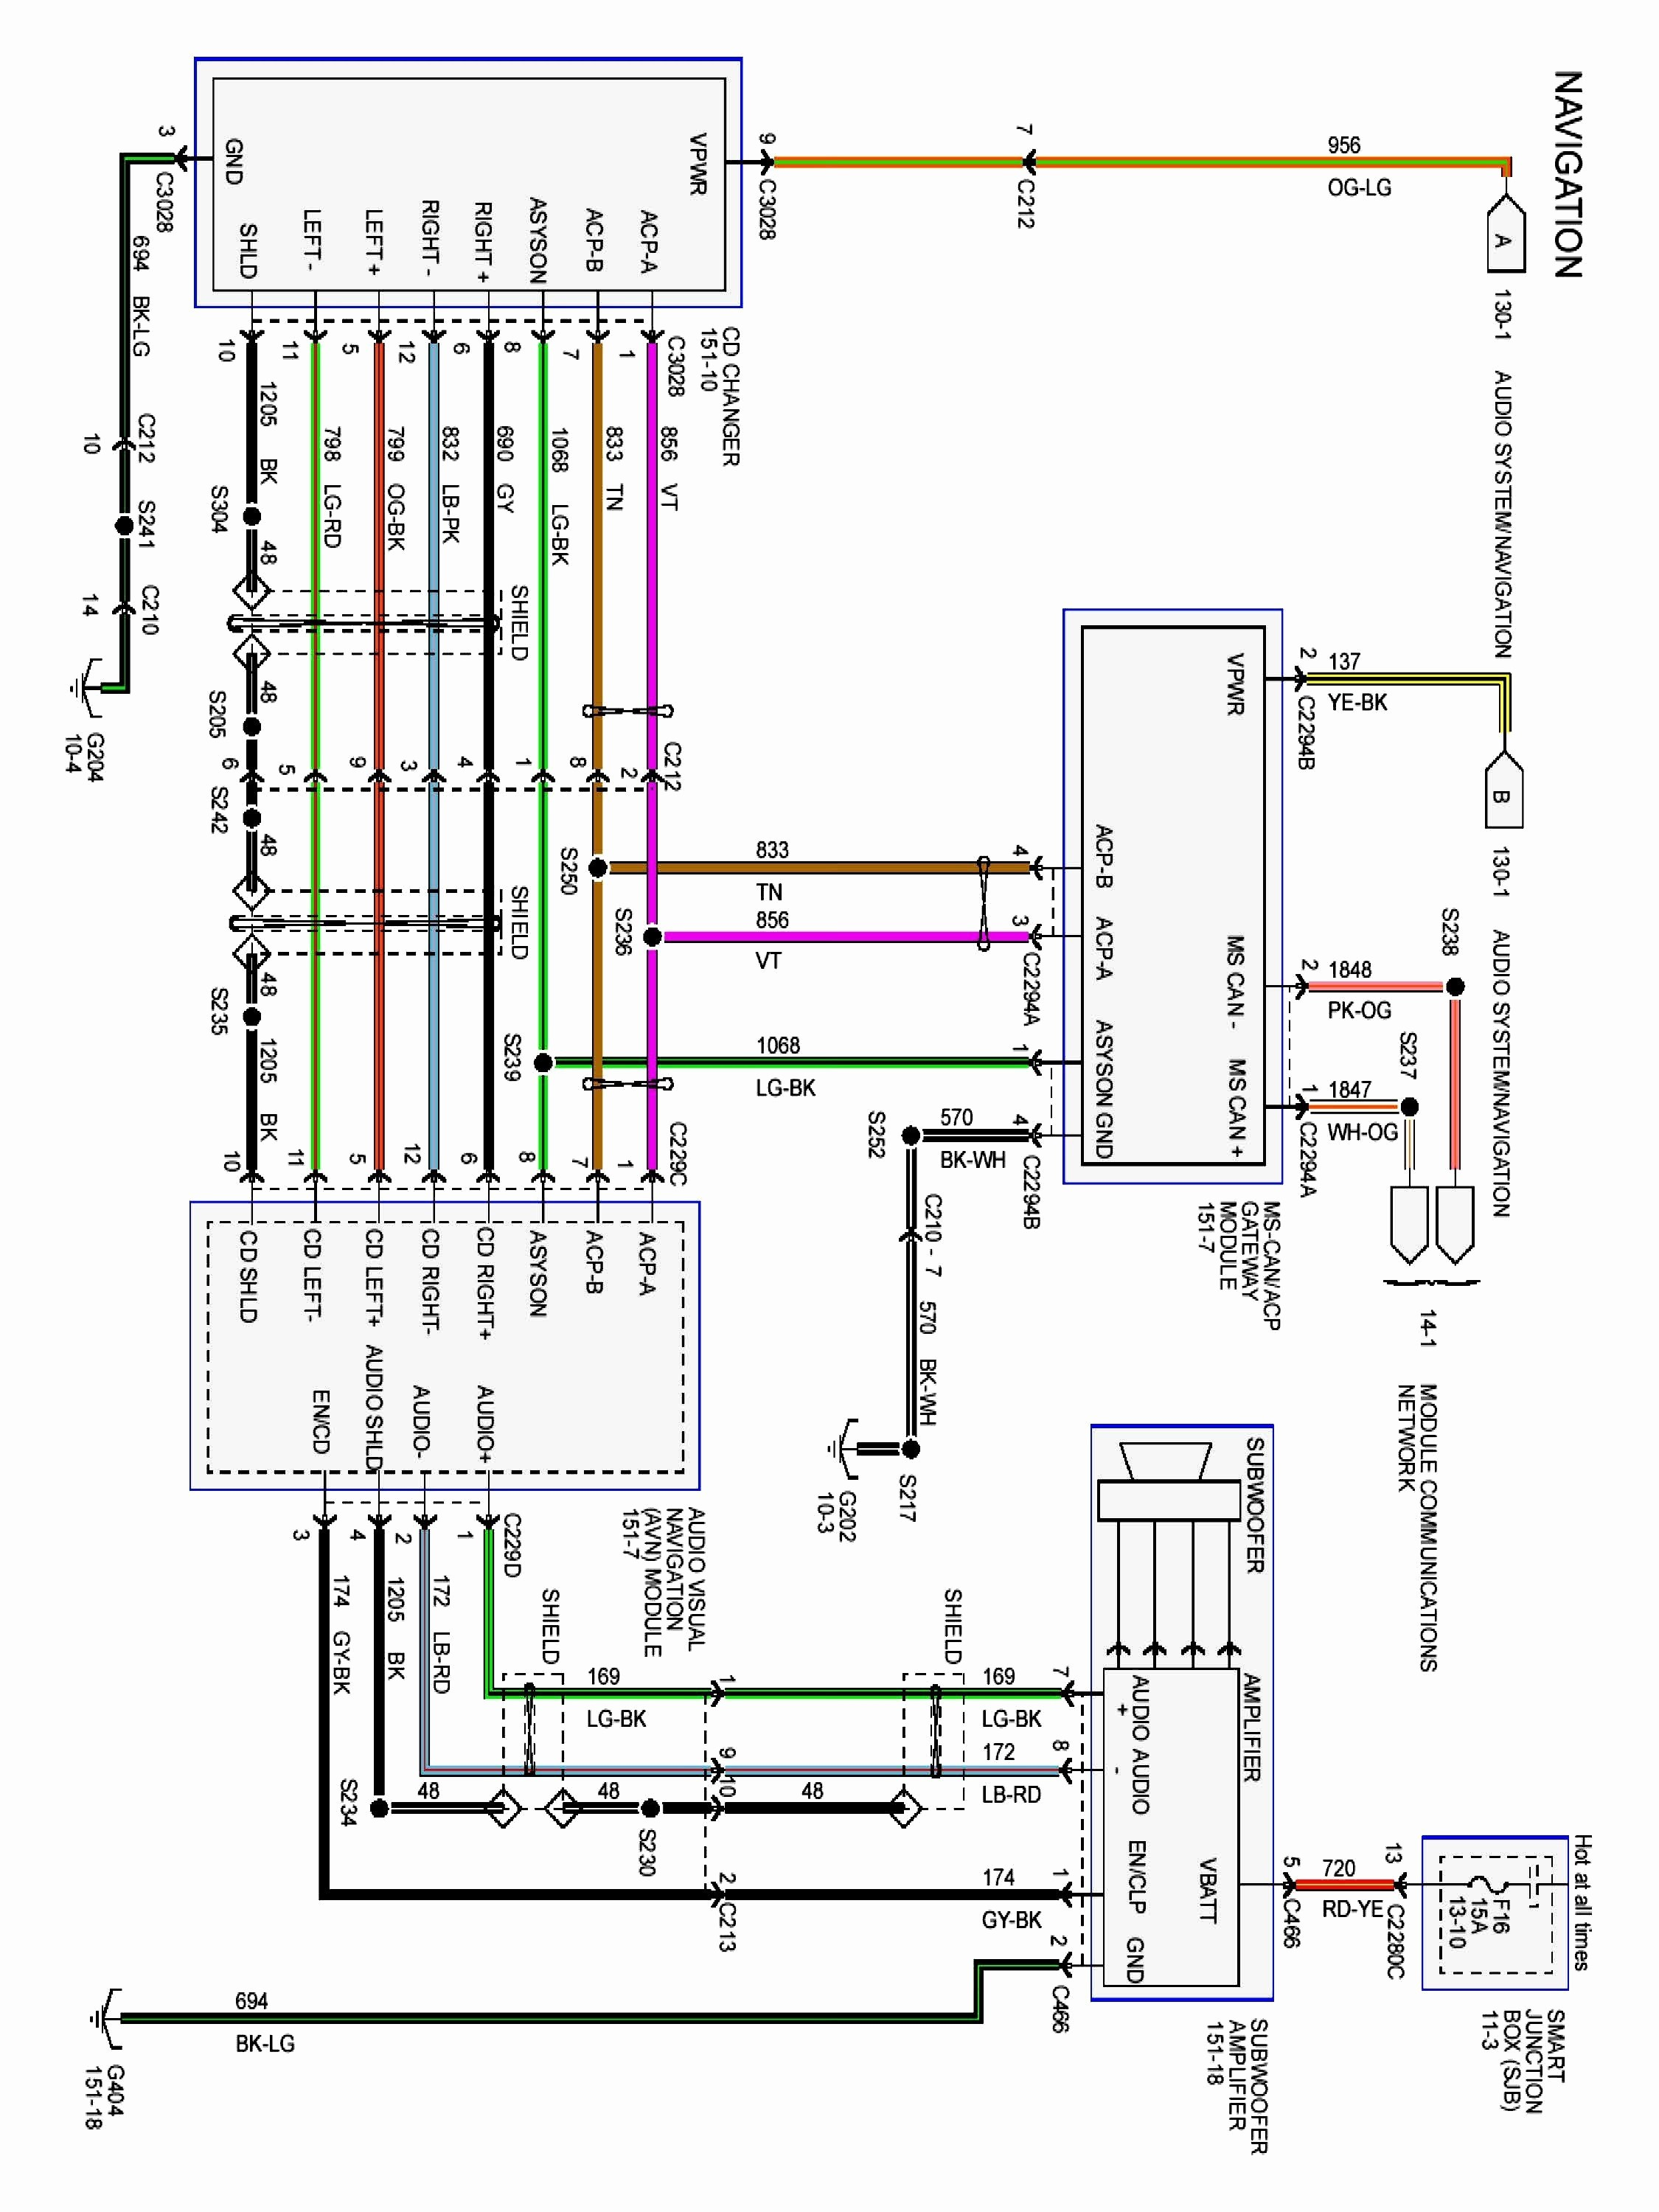 2006 Ford Taurus Radio Wiring Diagram Pictures - Wiring ...